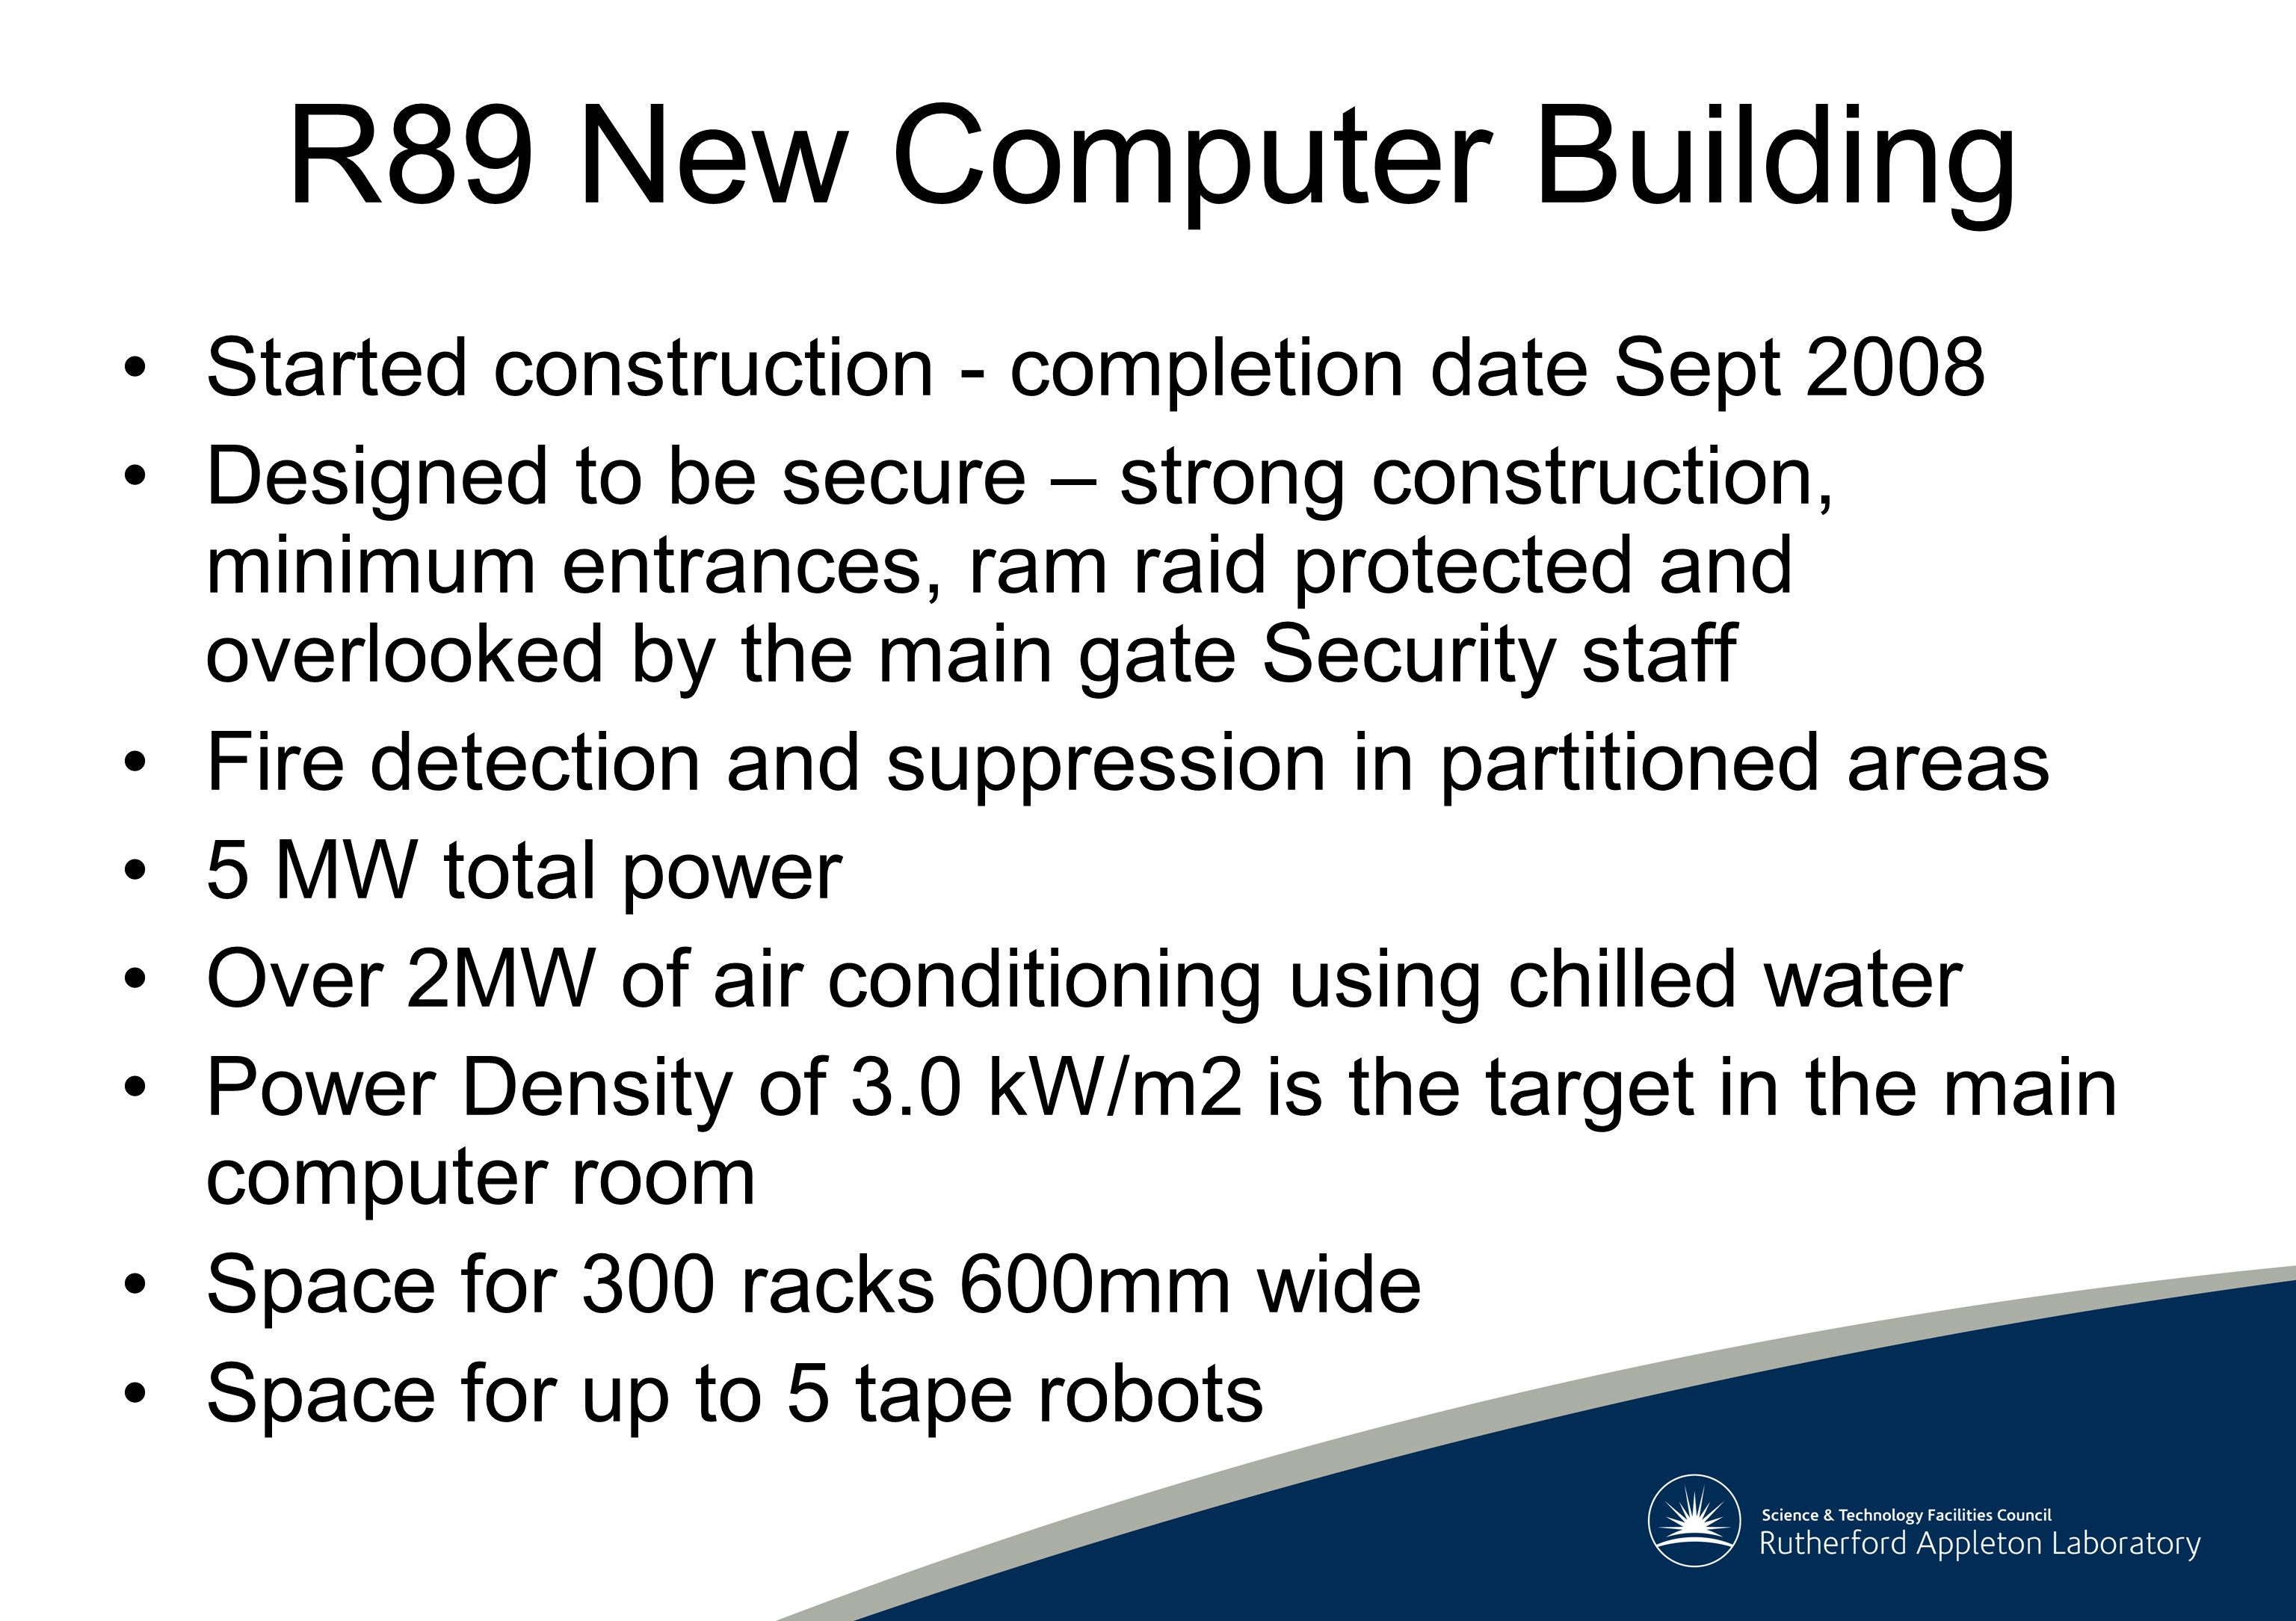 R89 New Computer Building Started construction - completion date Sept 2008 Designed to be secure – strong construction, minimum entrances, ram raid protected and overlooked by the main gate Security staff Fire detection and suppression in partitioned areas 5 MW total power Over 2MW of air conditioning using chilled water Power Density of 3.0 kW/m2 is the target in the main computer room Space for 300 racks 600mm wide Space for up to 5 tape robots